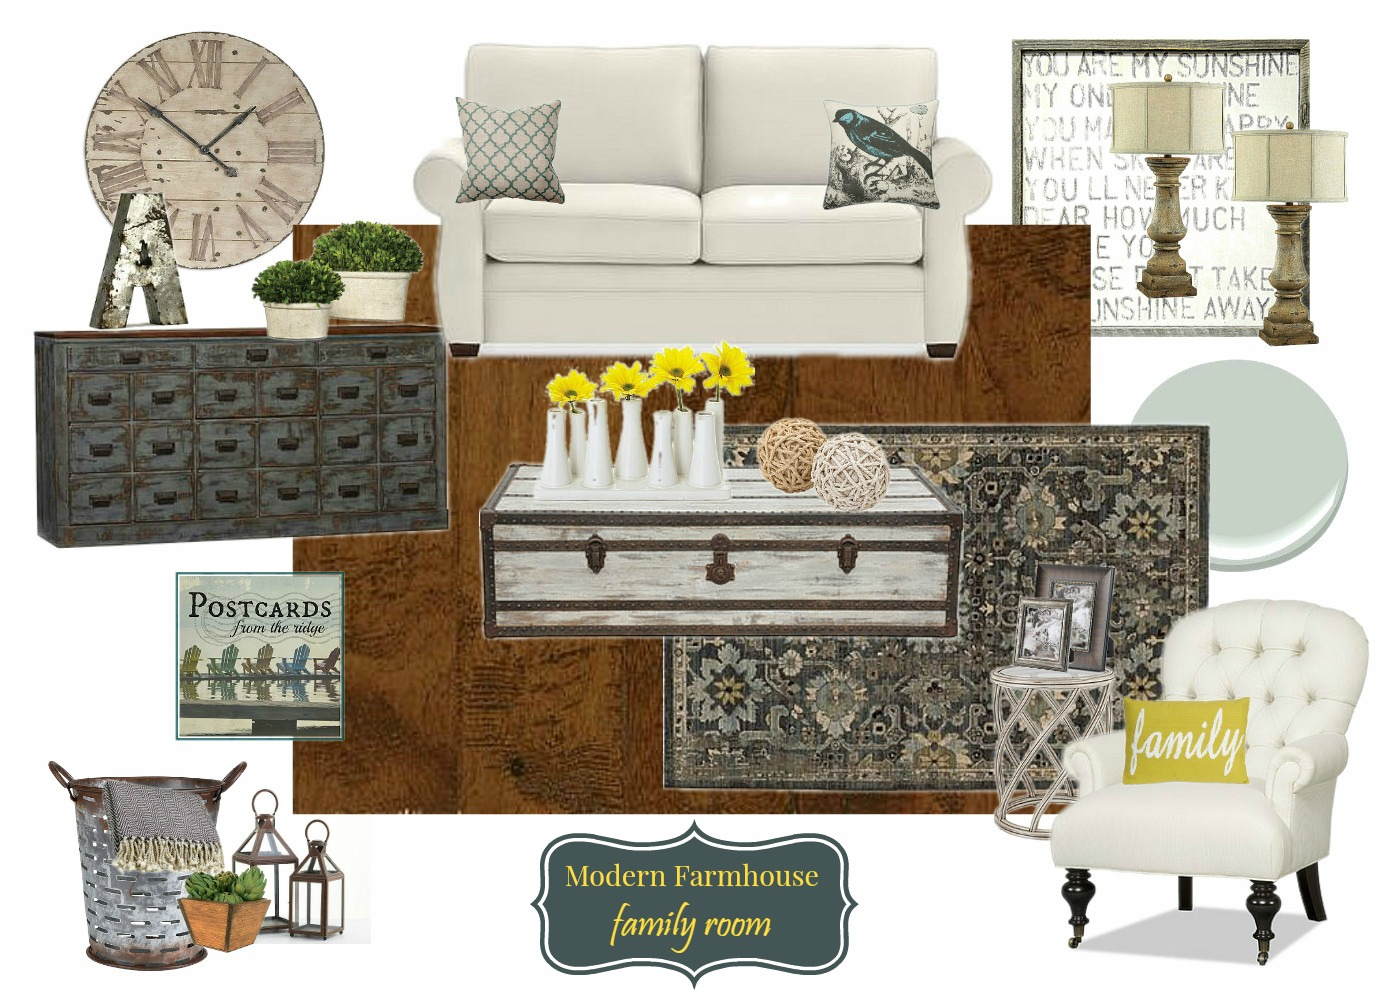 Adding a welcoming feel to the family room with Modern Farmhouse decor #inspiredhome